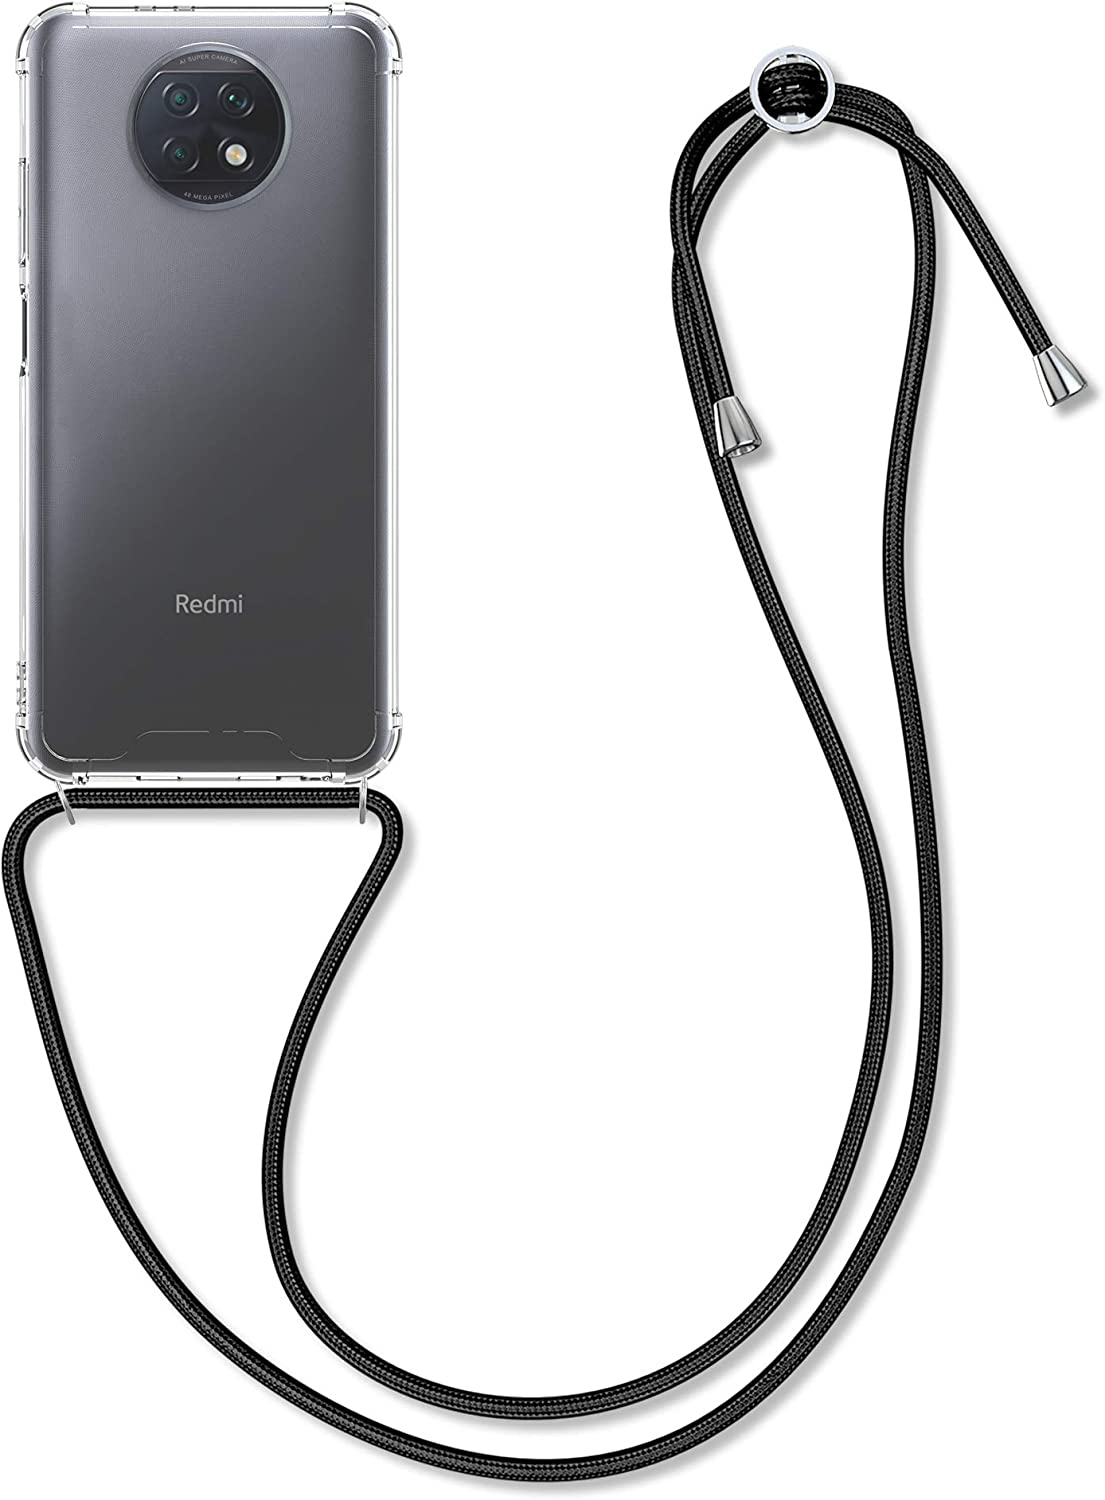 kwmobile Crossbody Case Compatible with Xiaomi Redmi Note 9T - Case Clear TPU Phone Cover w/Lanyard Cord Strap - Black/Transparent